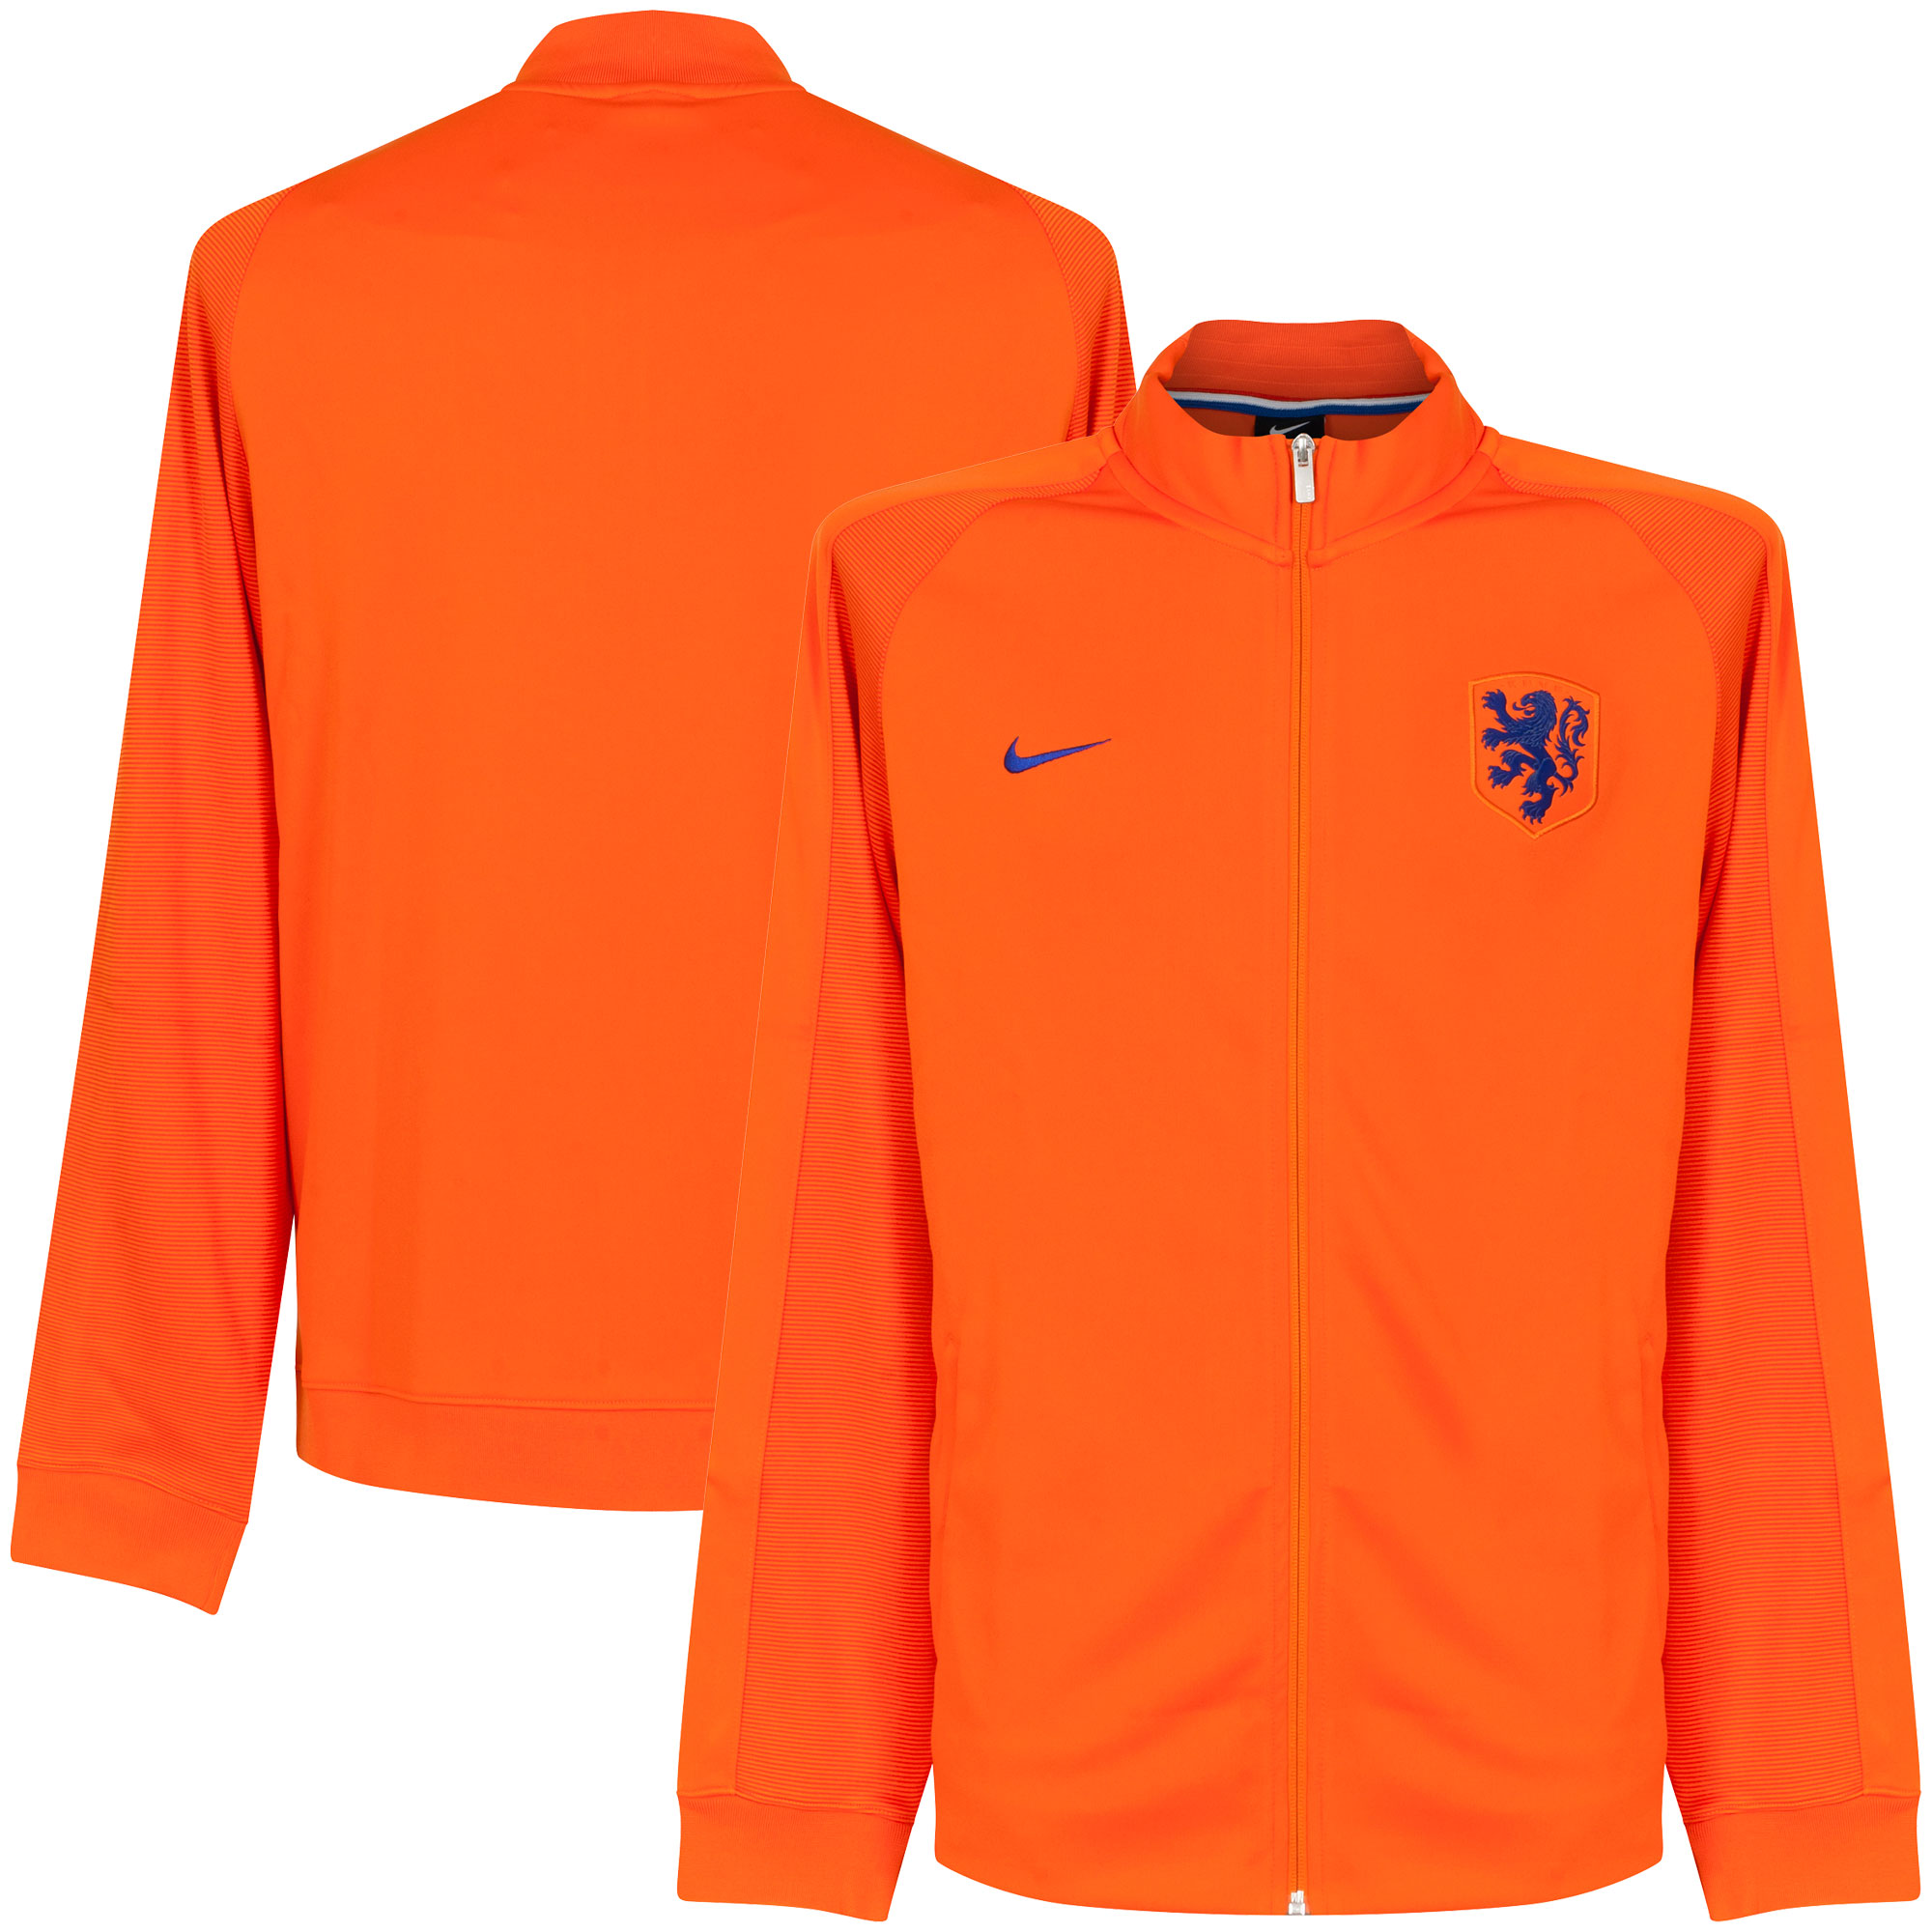 Holland Authentic N98 Track Jacket 2016 / 2017 - Orange - S